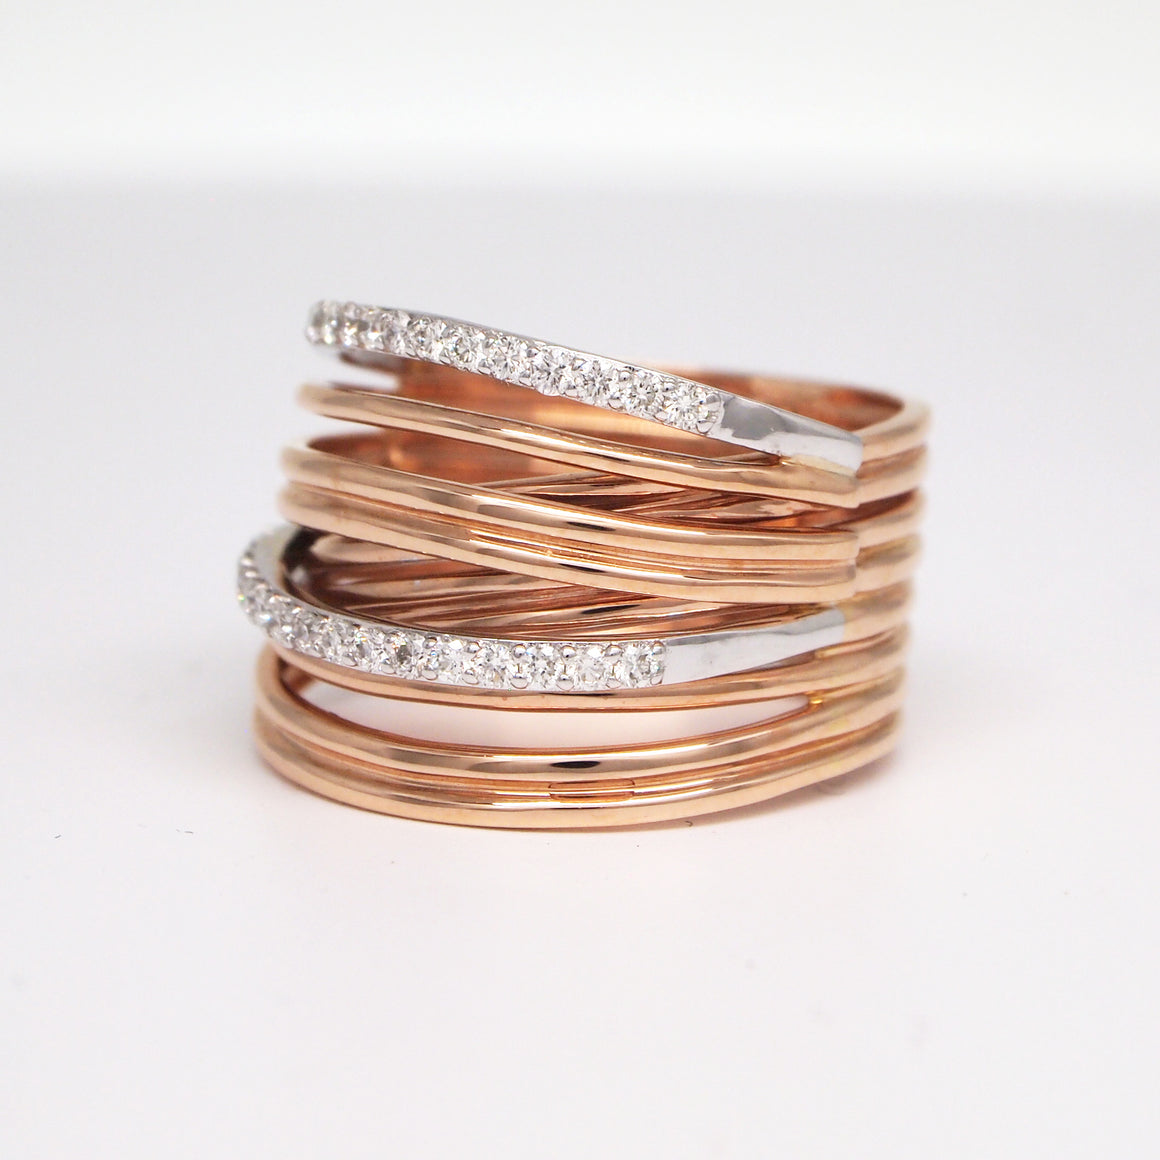 14K White and Rose Gold Diamond Band